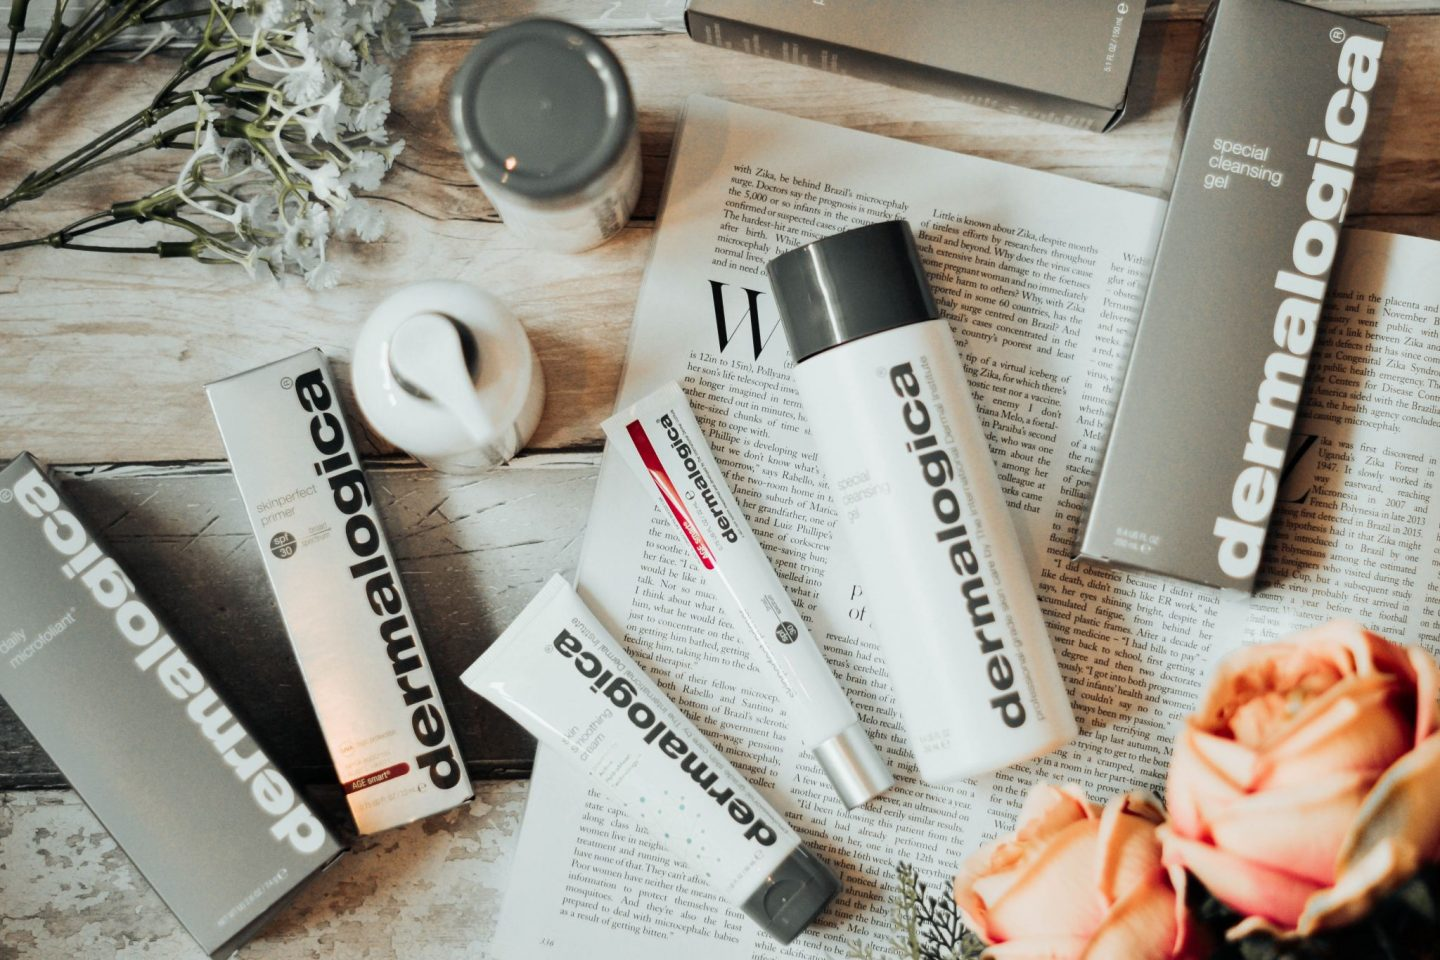 Dermalogica: the skincare brand that changed my life